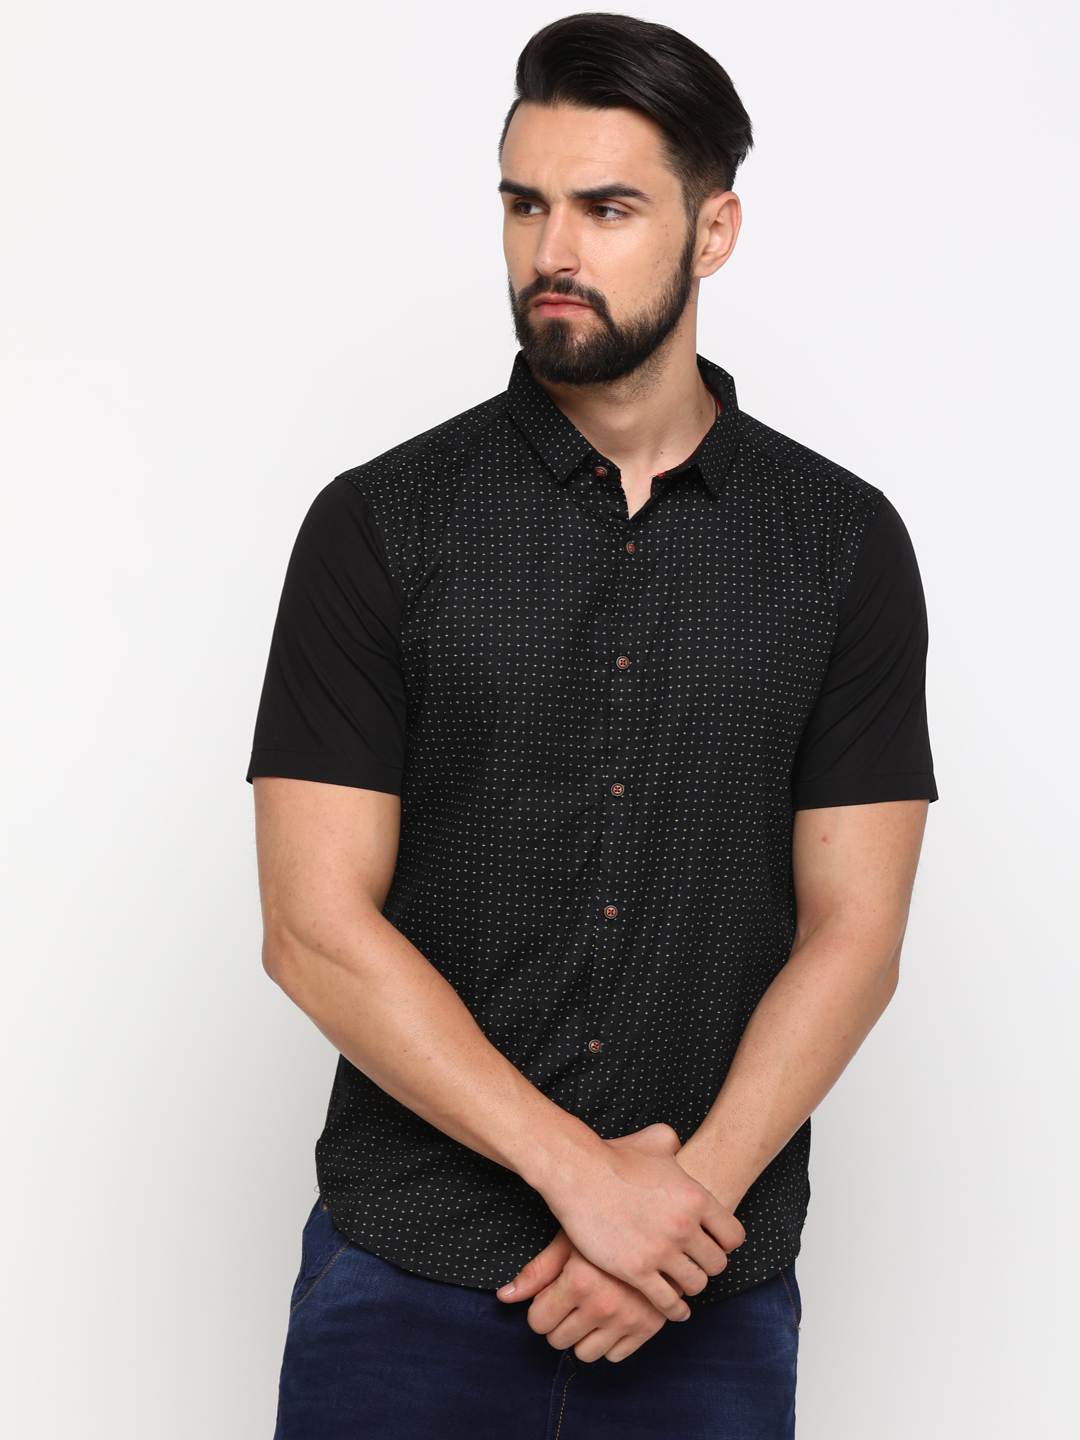 With | WITH Men's Black Cotton Printed SlimFit Shirt